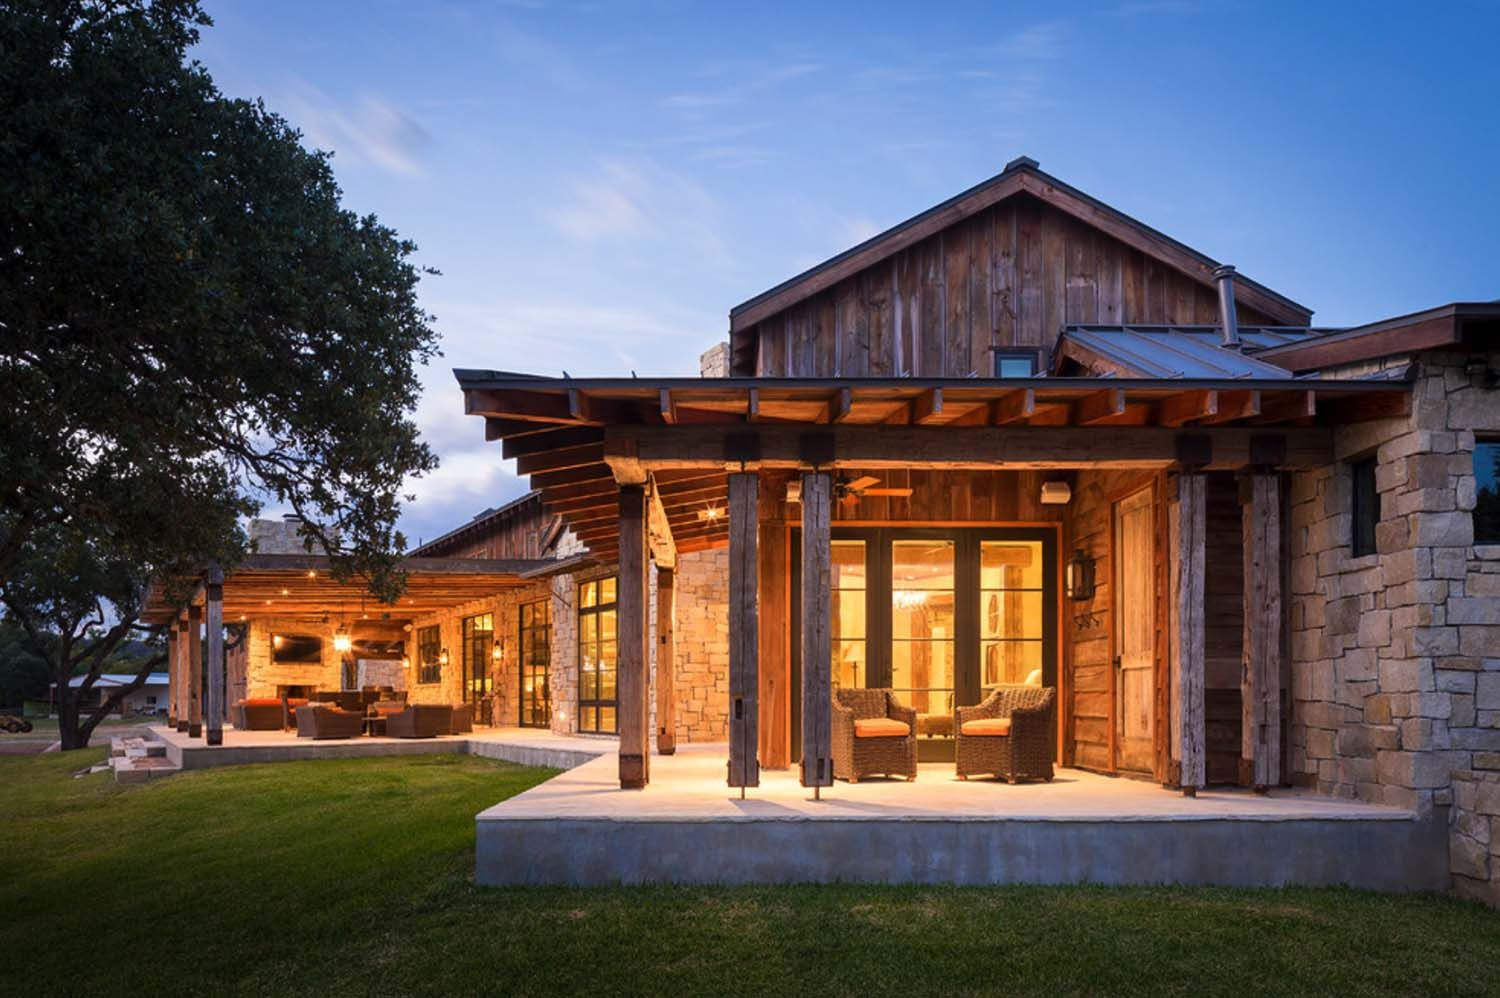 Modern rustic barn style retreat in texas hill country for Texas hill country home designs